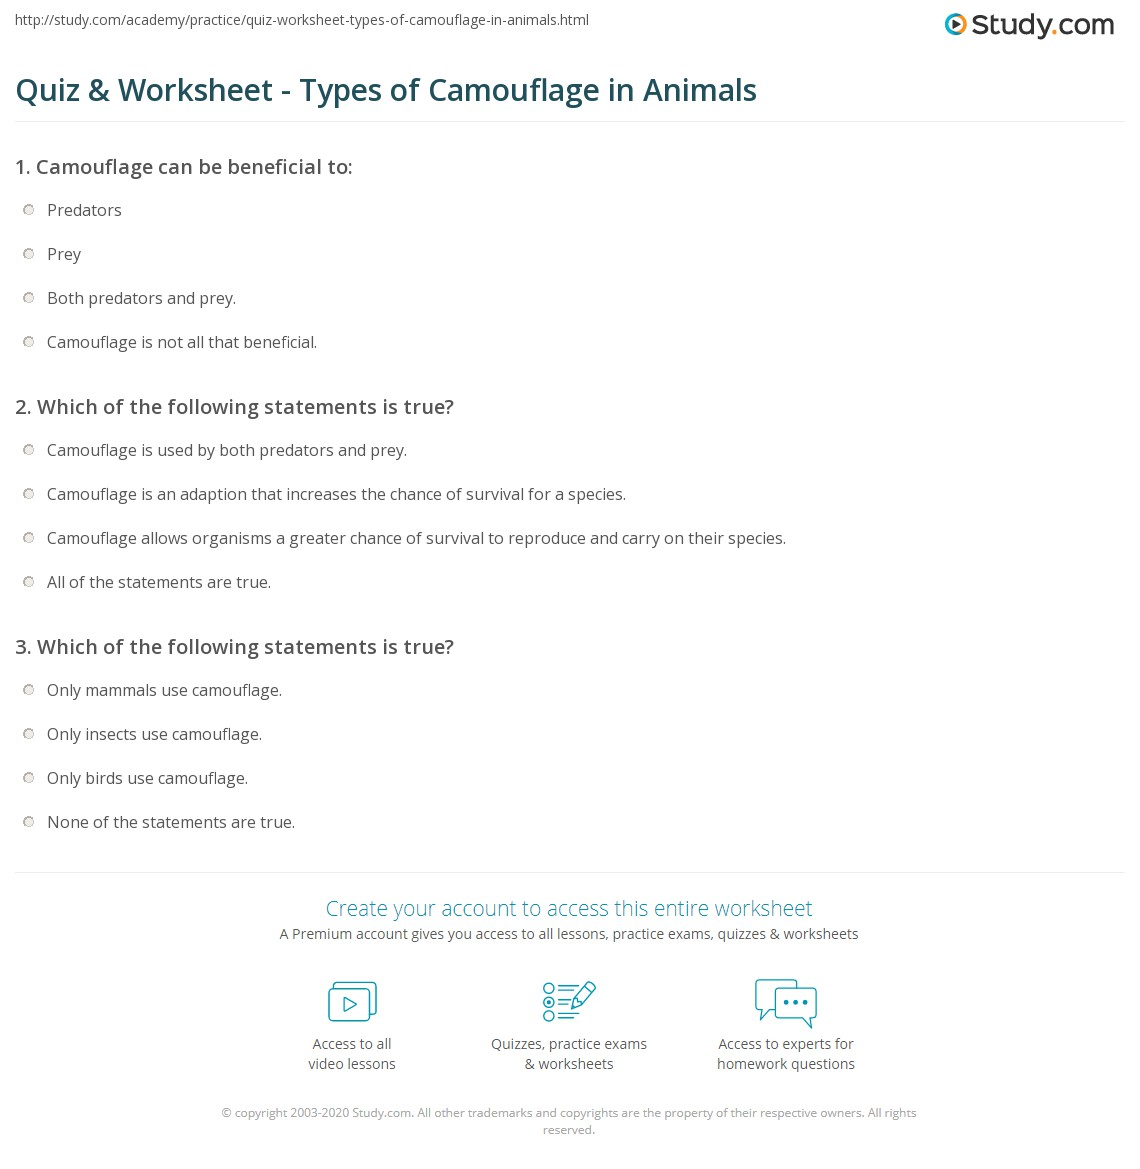 Quiz & Worksheet - Types of Camouflage in Animals | Study.com